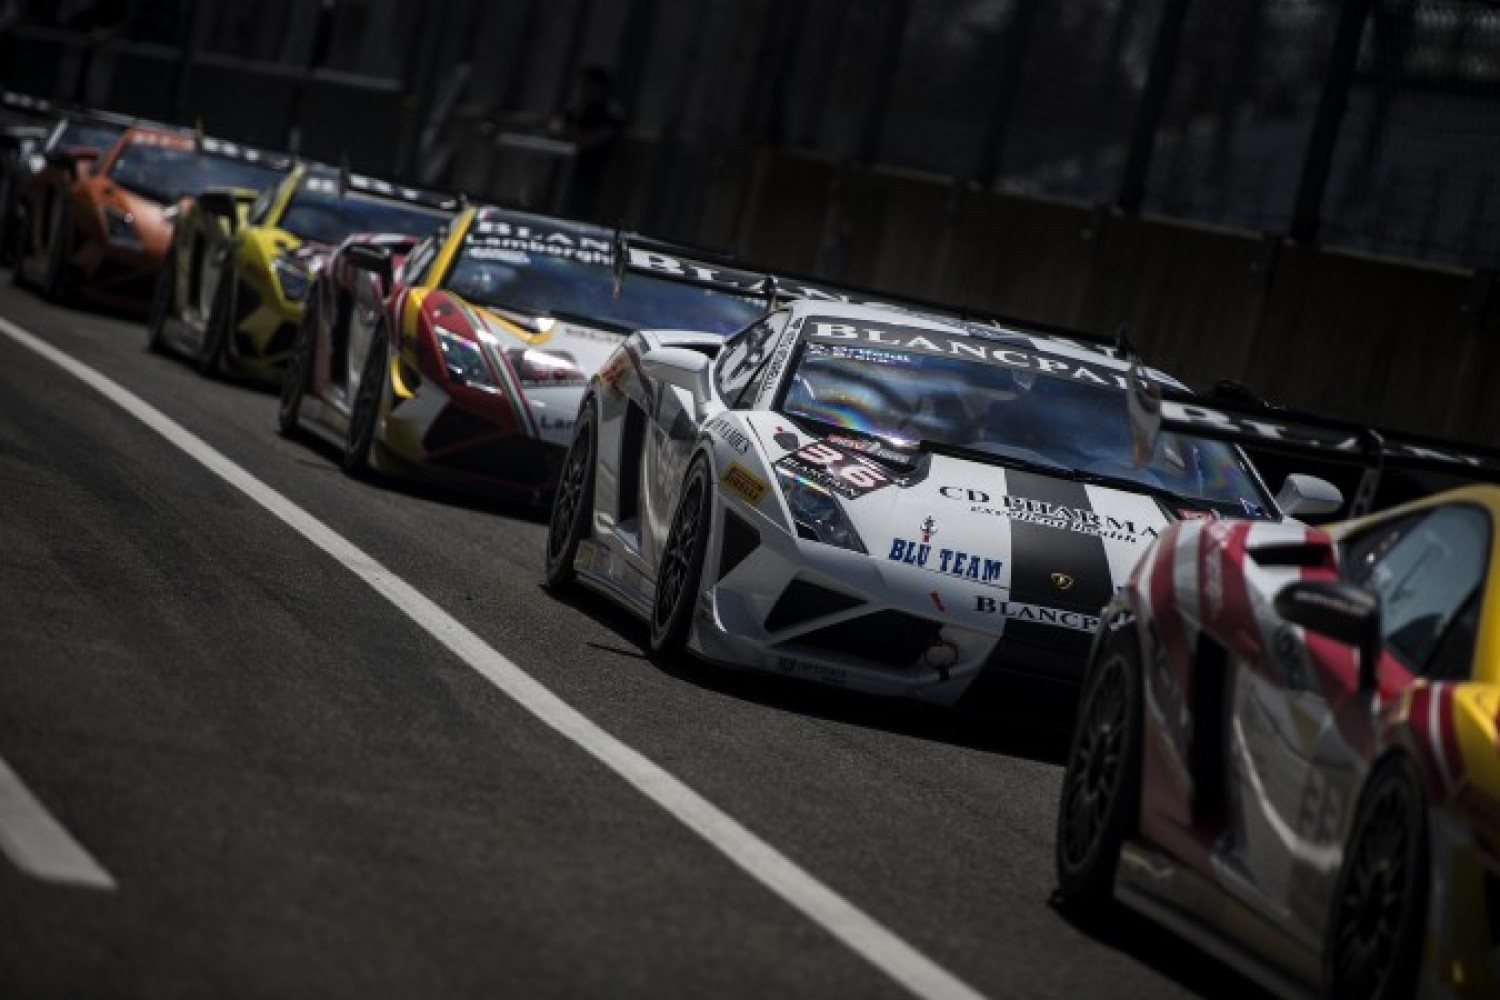 Full House for the 2014 Blancpain GT Series